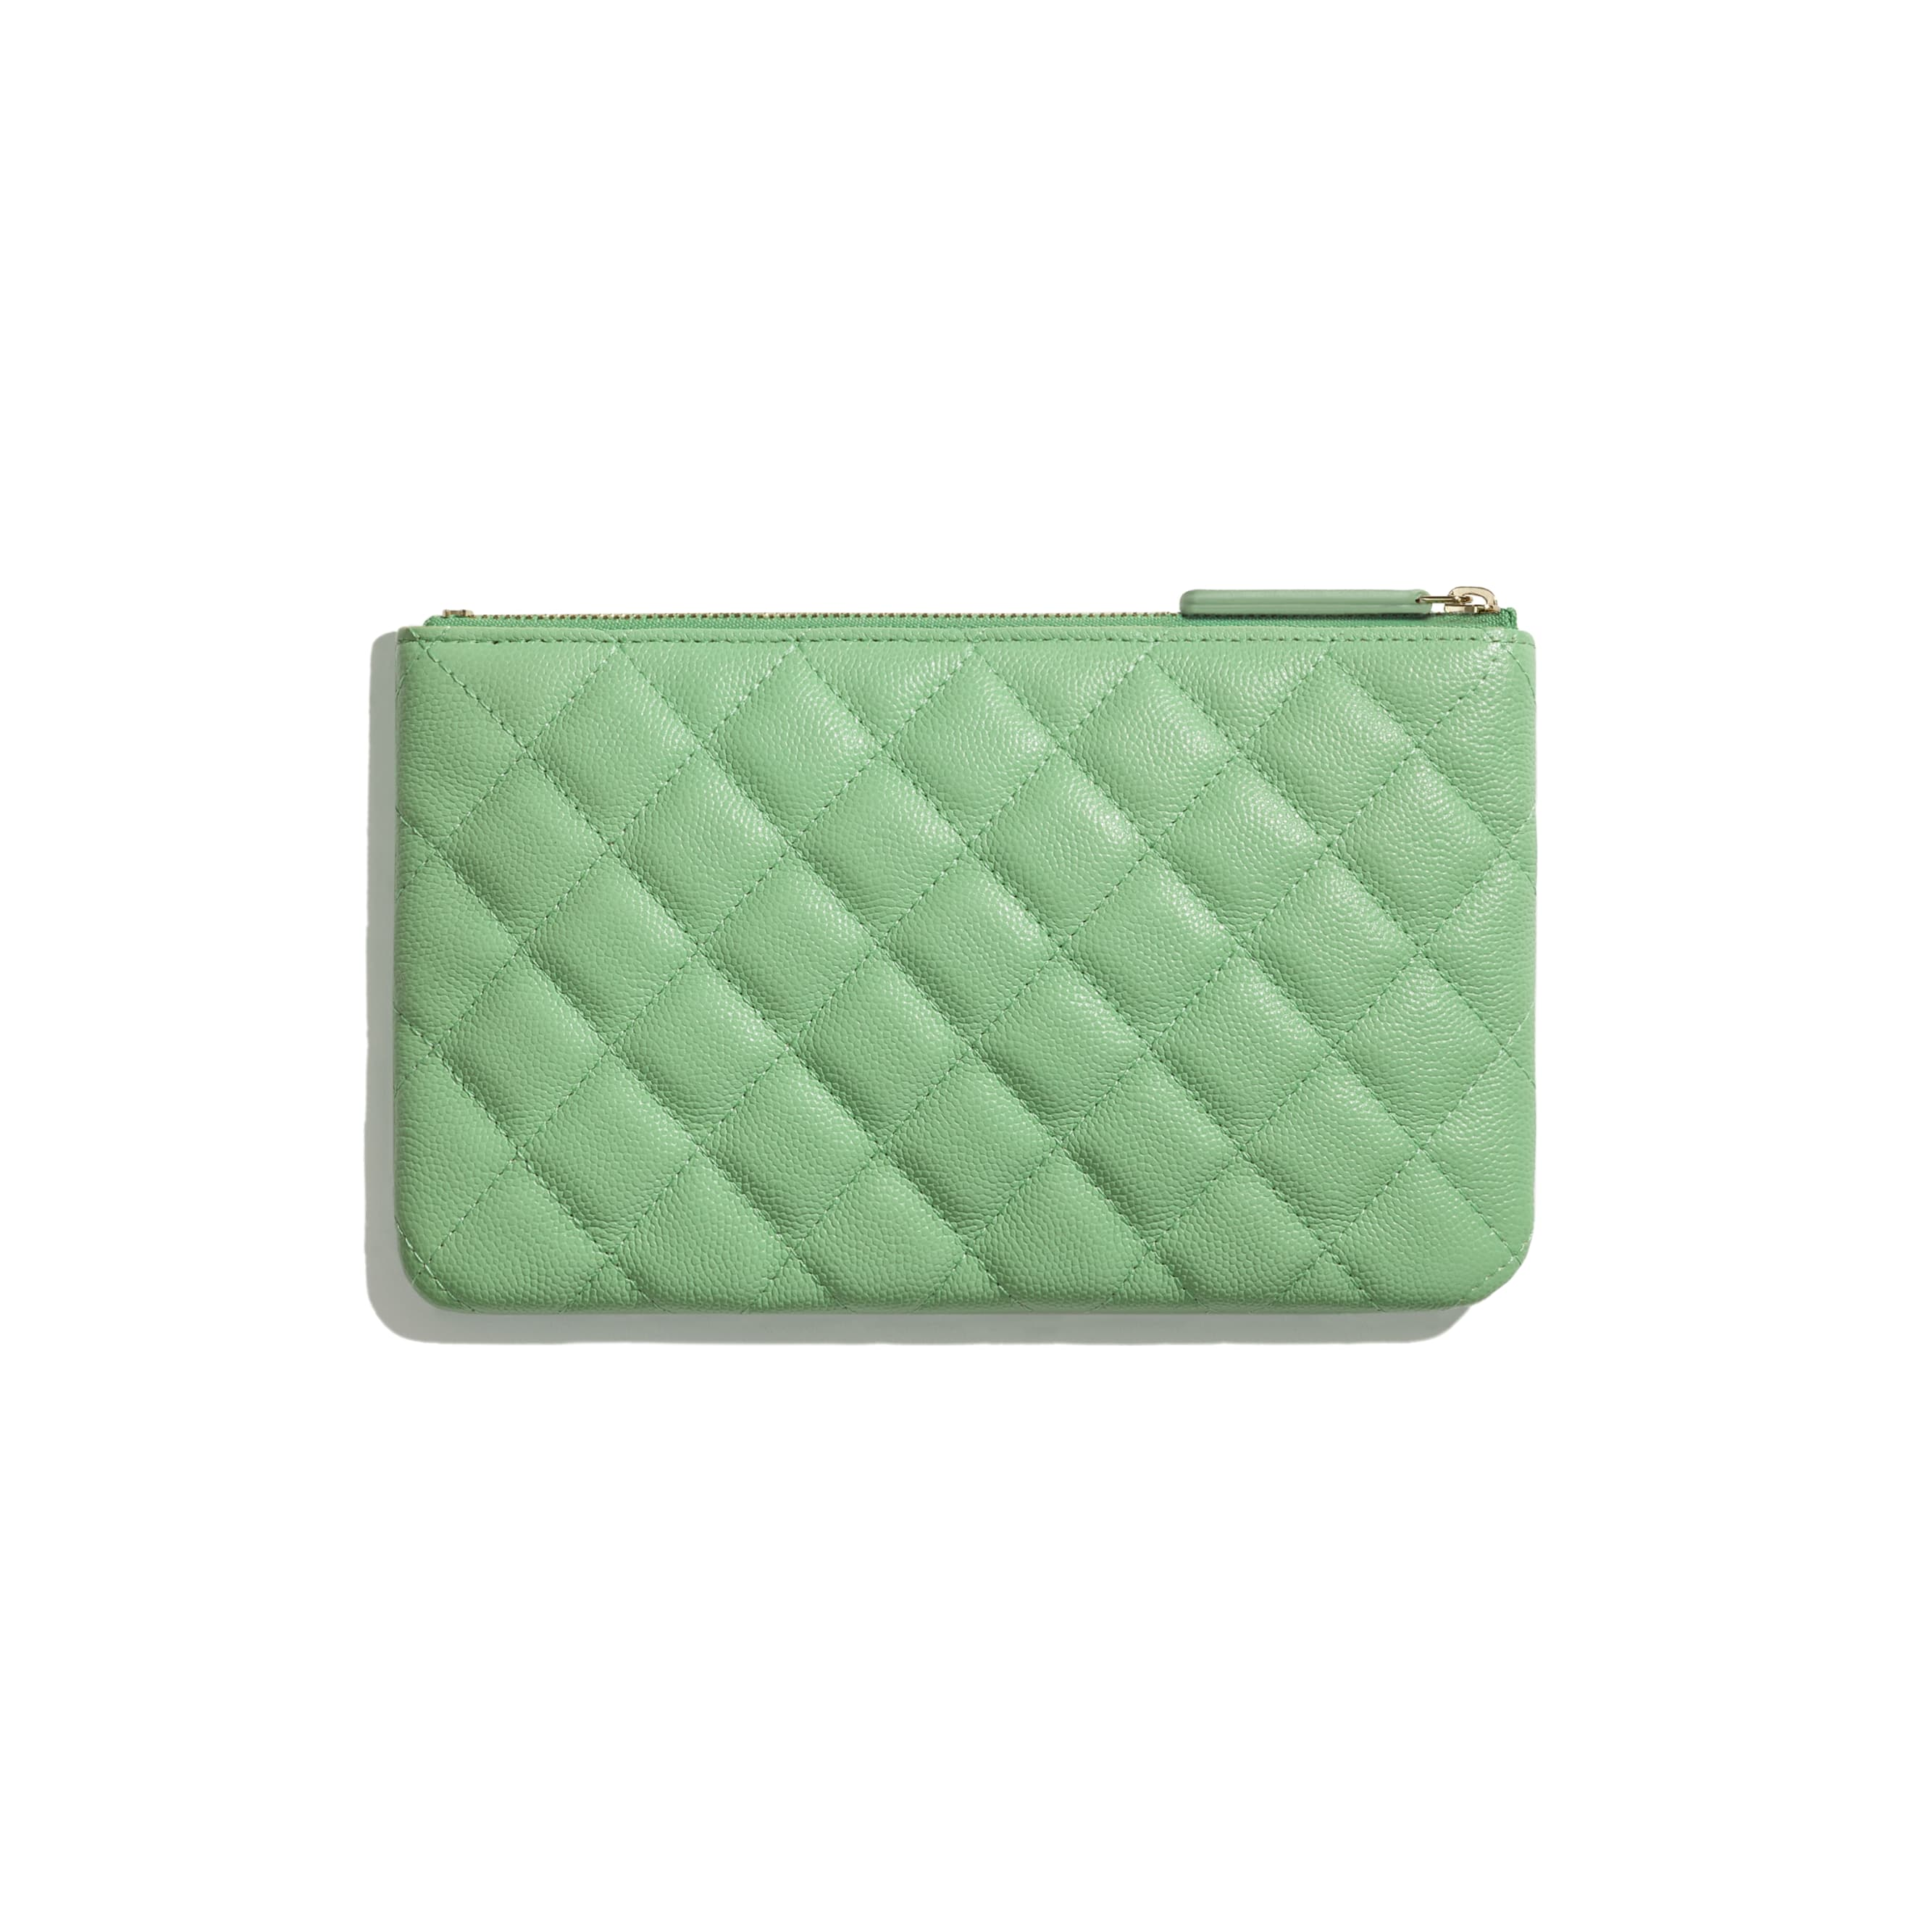 Classic Small Pouch - Green - Grained Calfskin & Gold-Tone Metal - CHANEL - Alternative view - see standard sized version